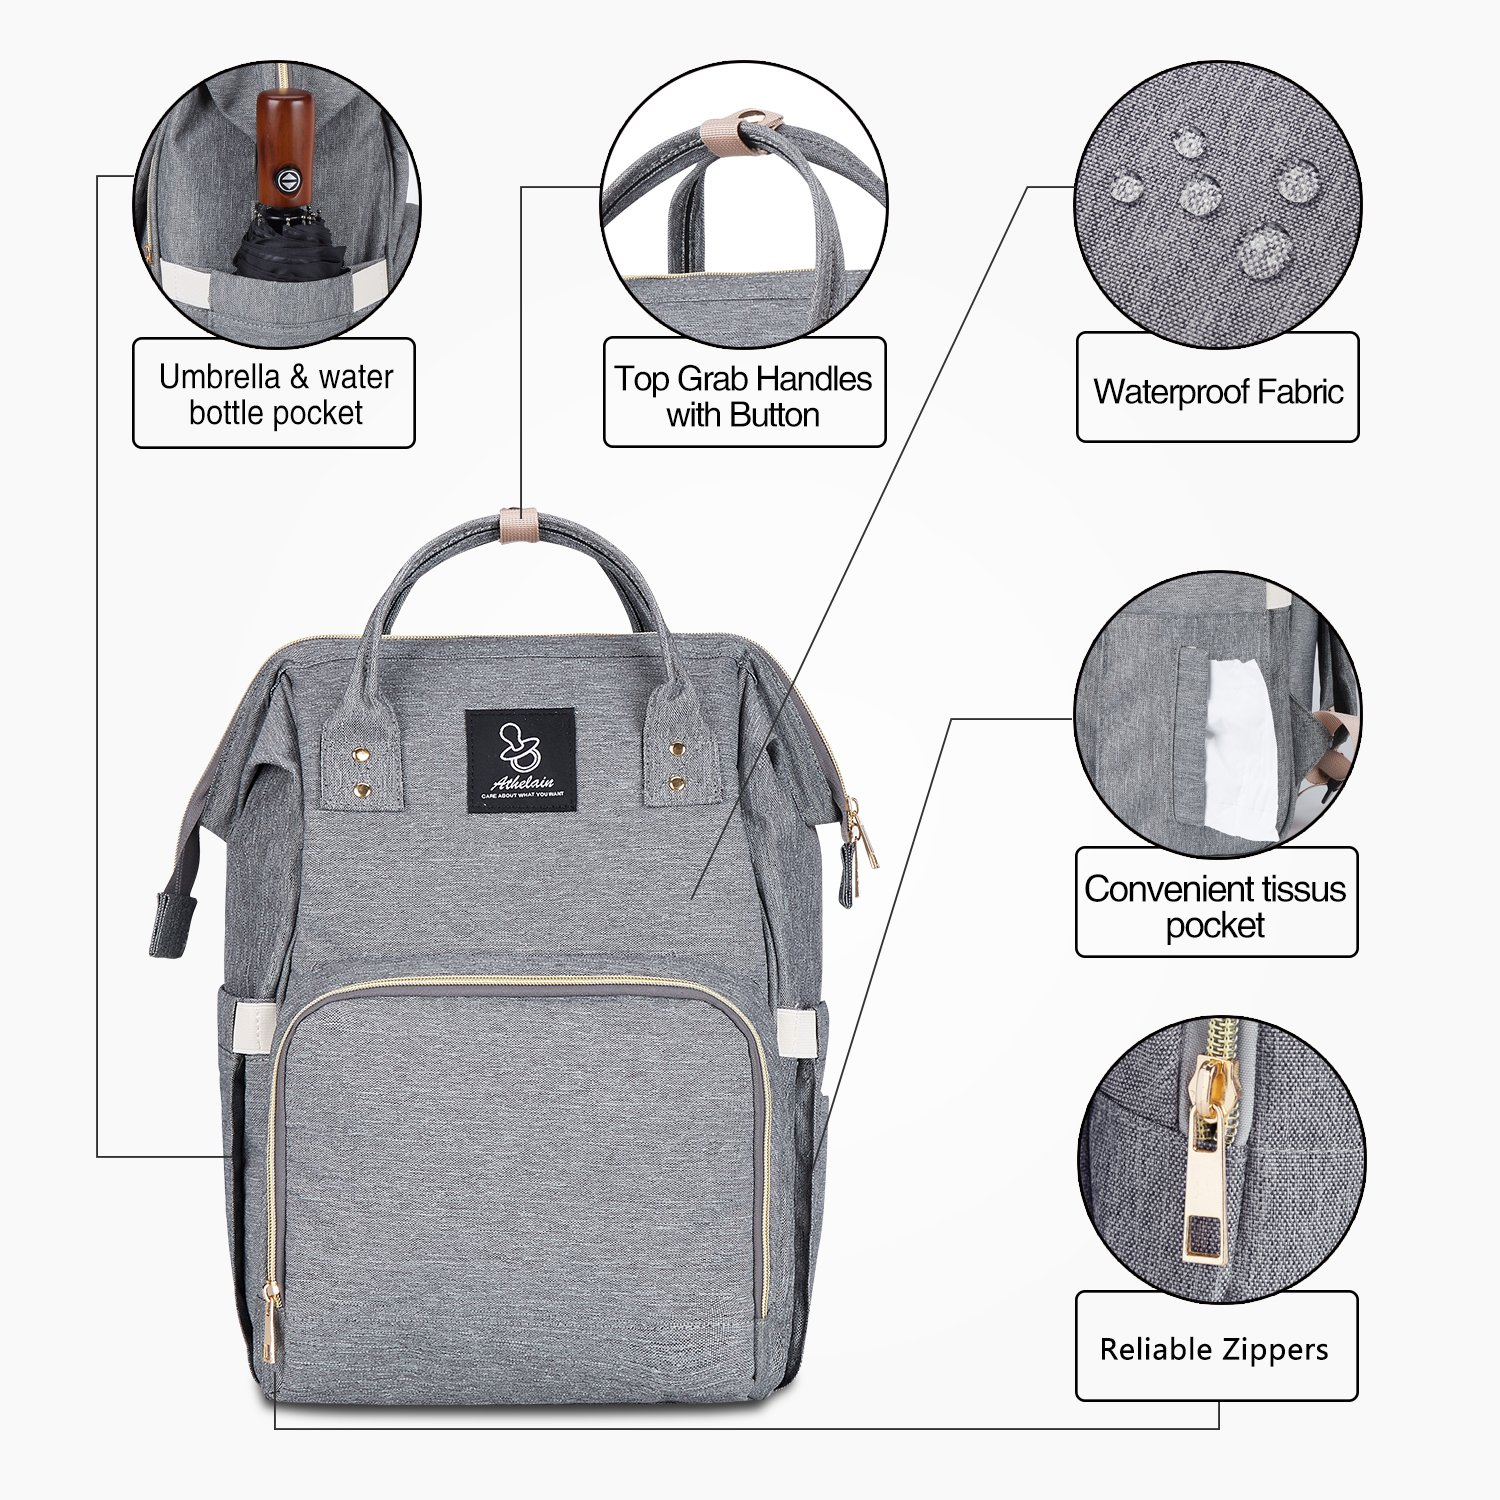 Athelain Diaper Bag,Multi-Function Waterproof Travel Backpack Nappy Bags for Baby Care, Large Capacity, Stylish and Durable (Gray) by Athelain (Image #6)